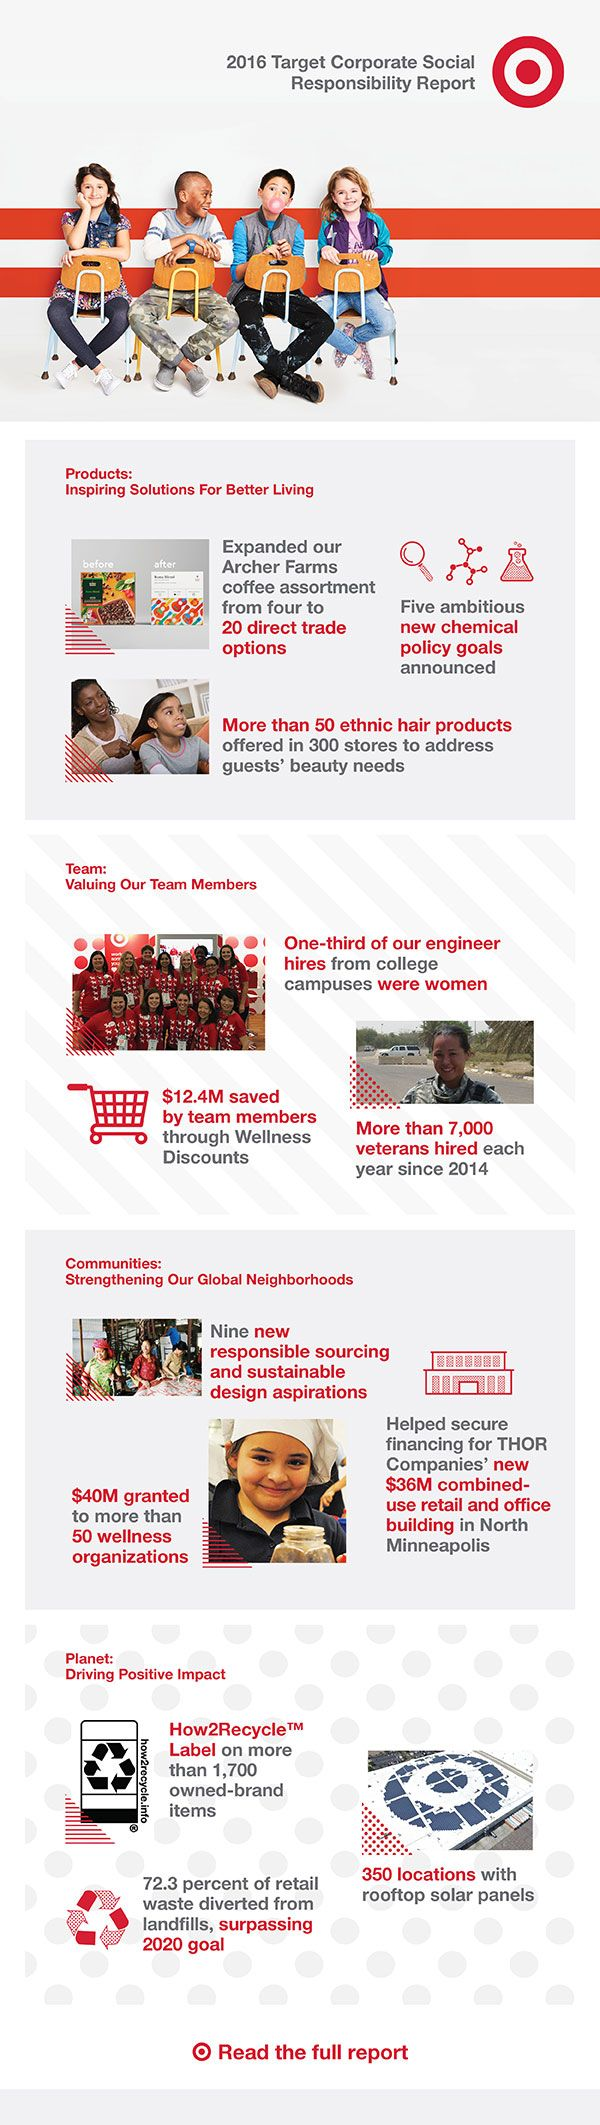 Using Our Scale to Make a Difference: Target Unveils 2016 Corporate Social Responsibility Report